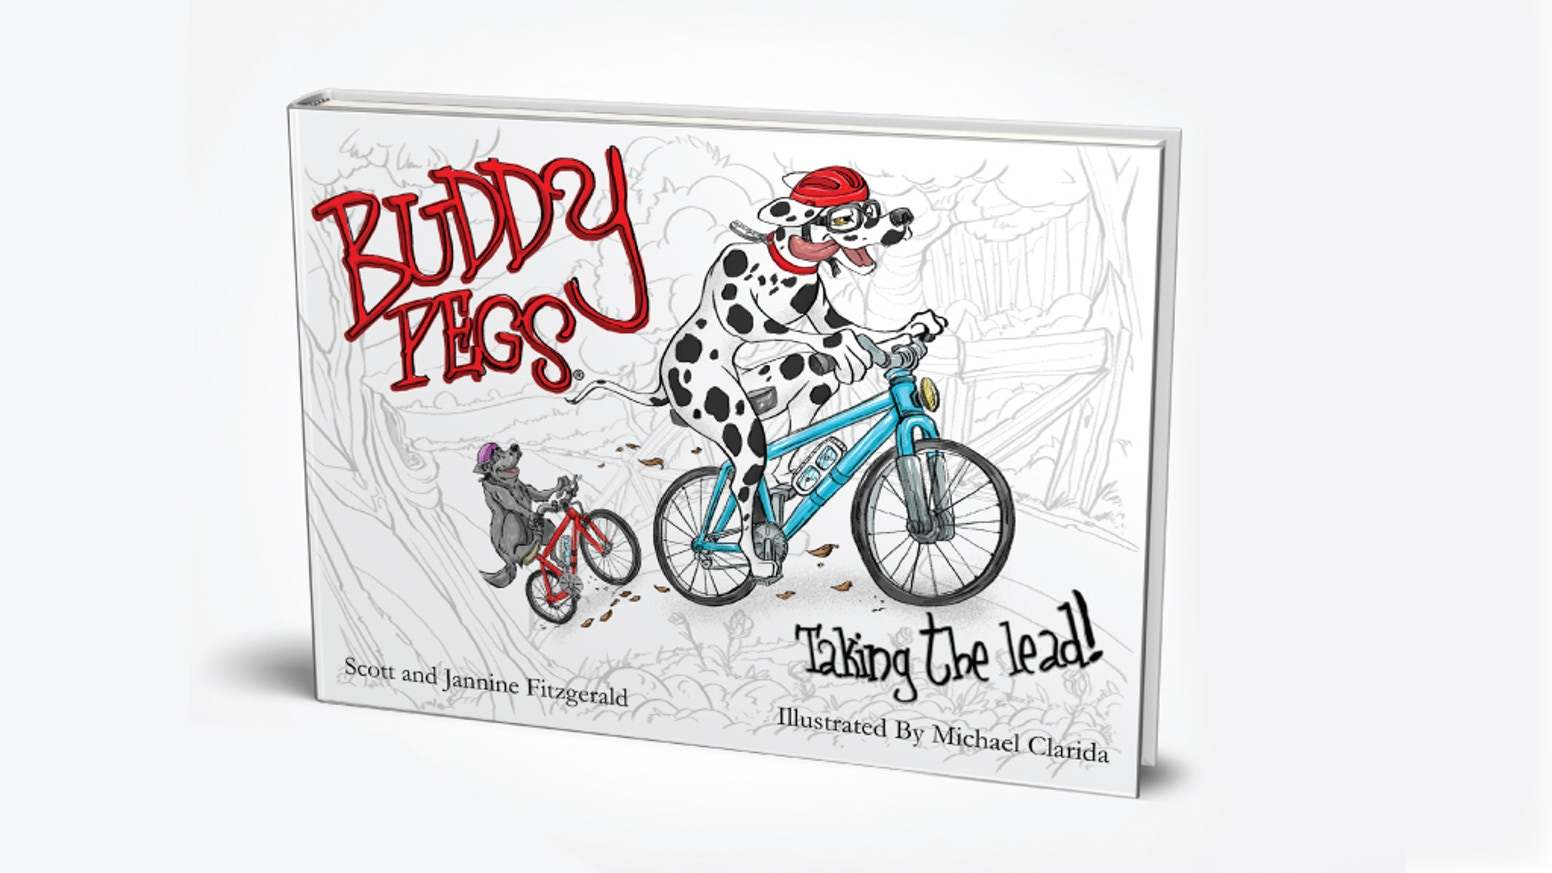 "You still can get a copy of Buddy Pegs Taking The Lead by clicking the link below. PLUS, follow our characters' ongoing adventures in children's storytelling PODCAST ""The World of Buddy Pegs"". Find it on iTunes, Sticher, or our website (buddypegs.com)."